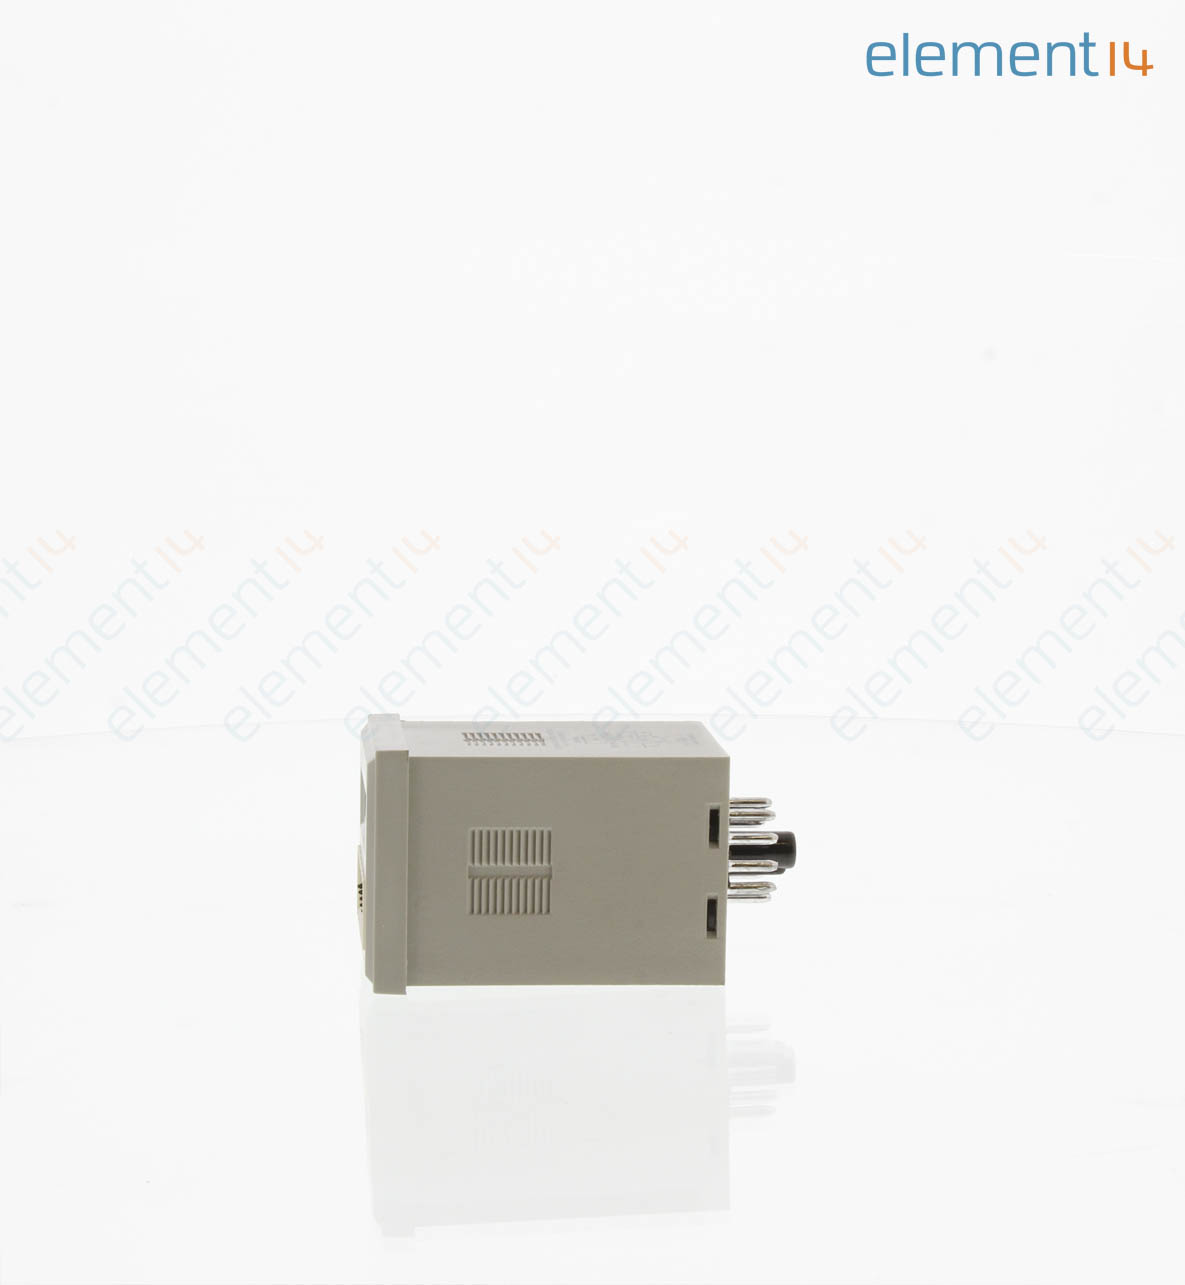 Cnt 35 96 Potterbrumfield Te Connectivity Panel Mount Timer Potter Brumfield Wiring Diagrams Add To Compare